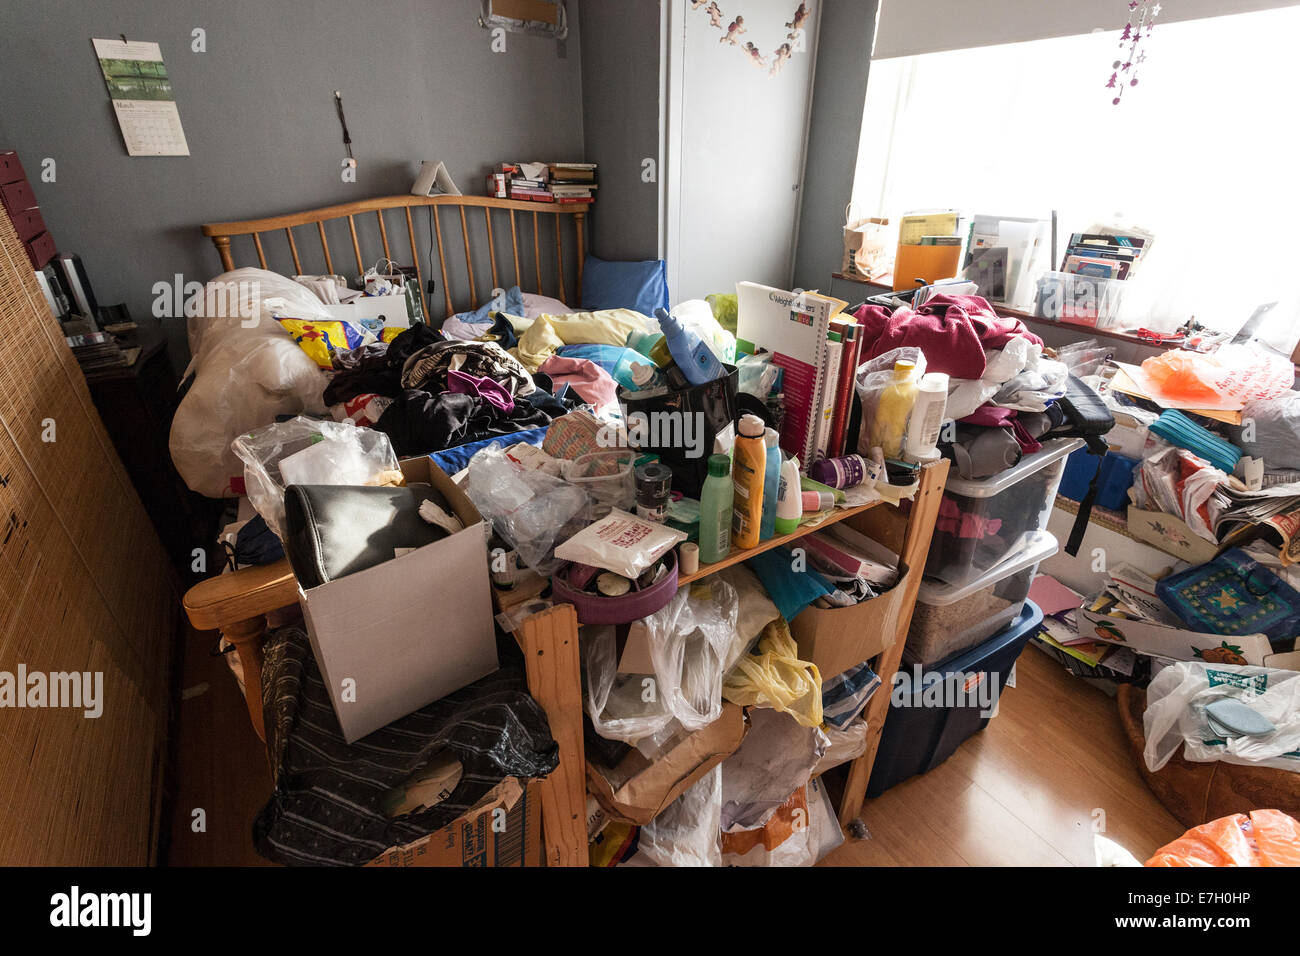 Cluttered Room Stock Photos  Cluttered Room Stock Images